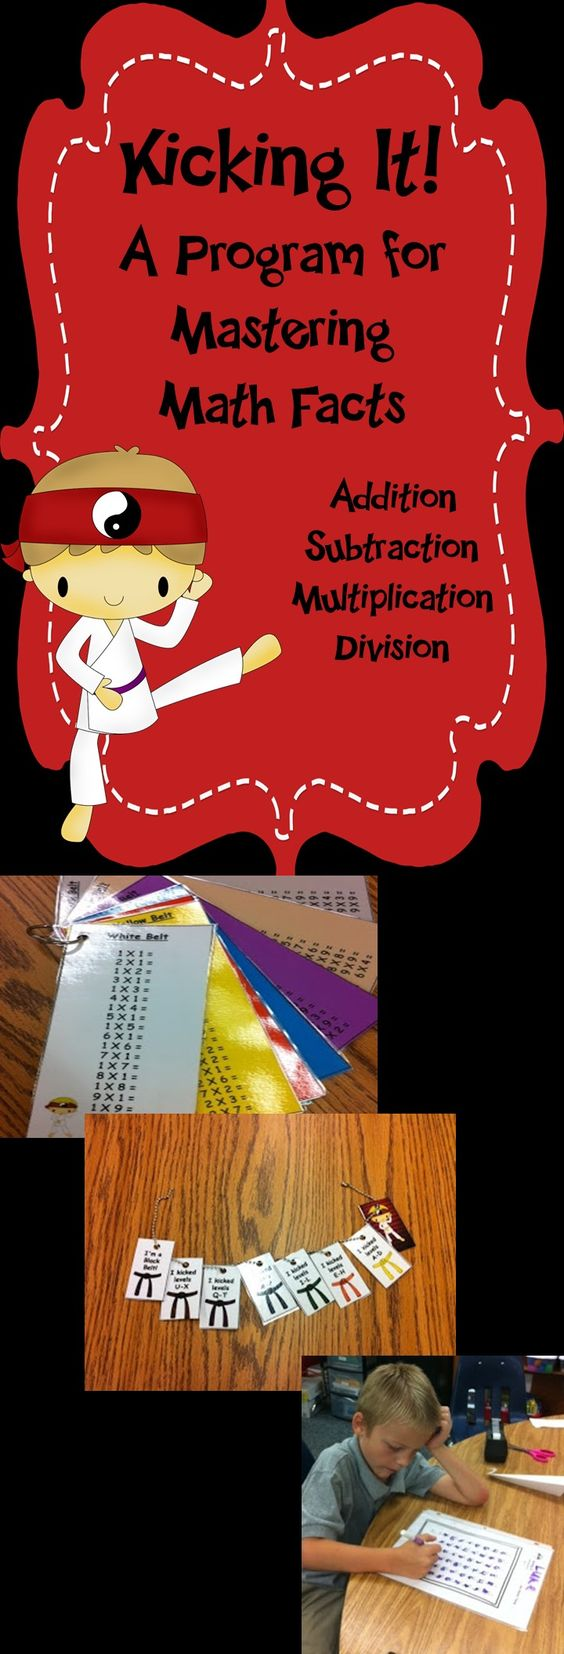 Worksheet Learning Math Facts math facts multiplication fact fluency program kicking it want to get your students excited about learning their try this fun karate